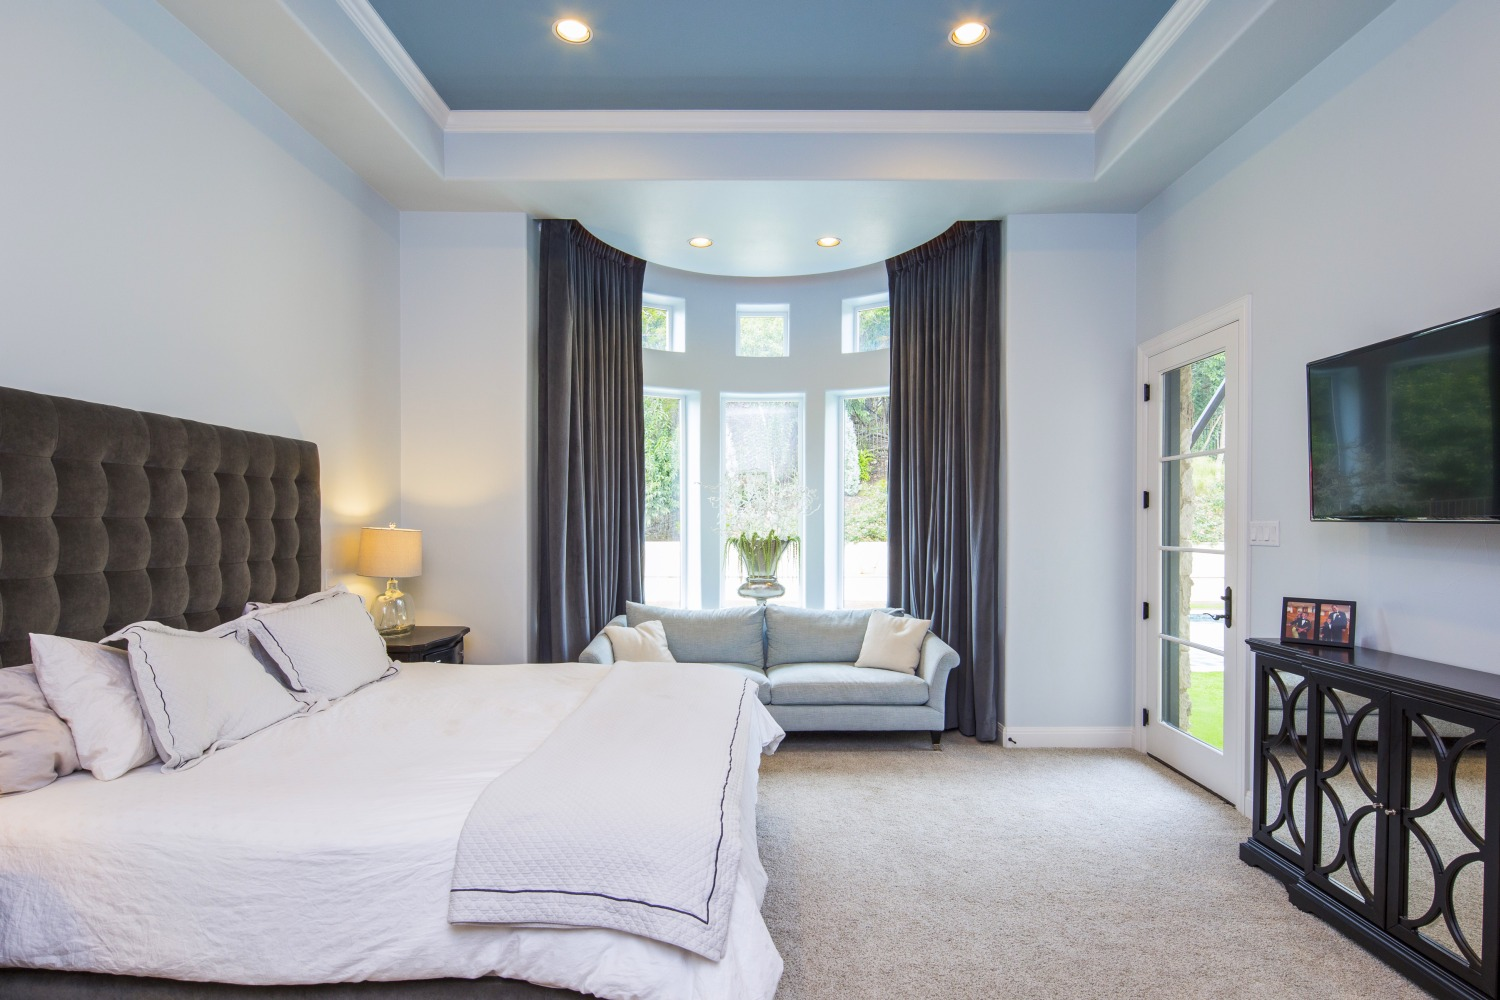 Architecture Home French contemporary bedroom